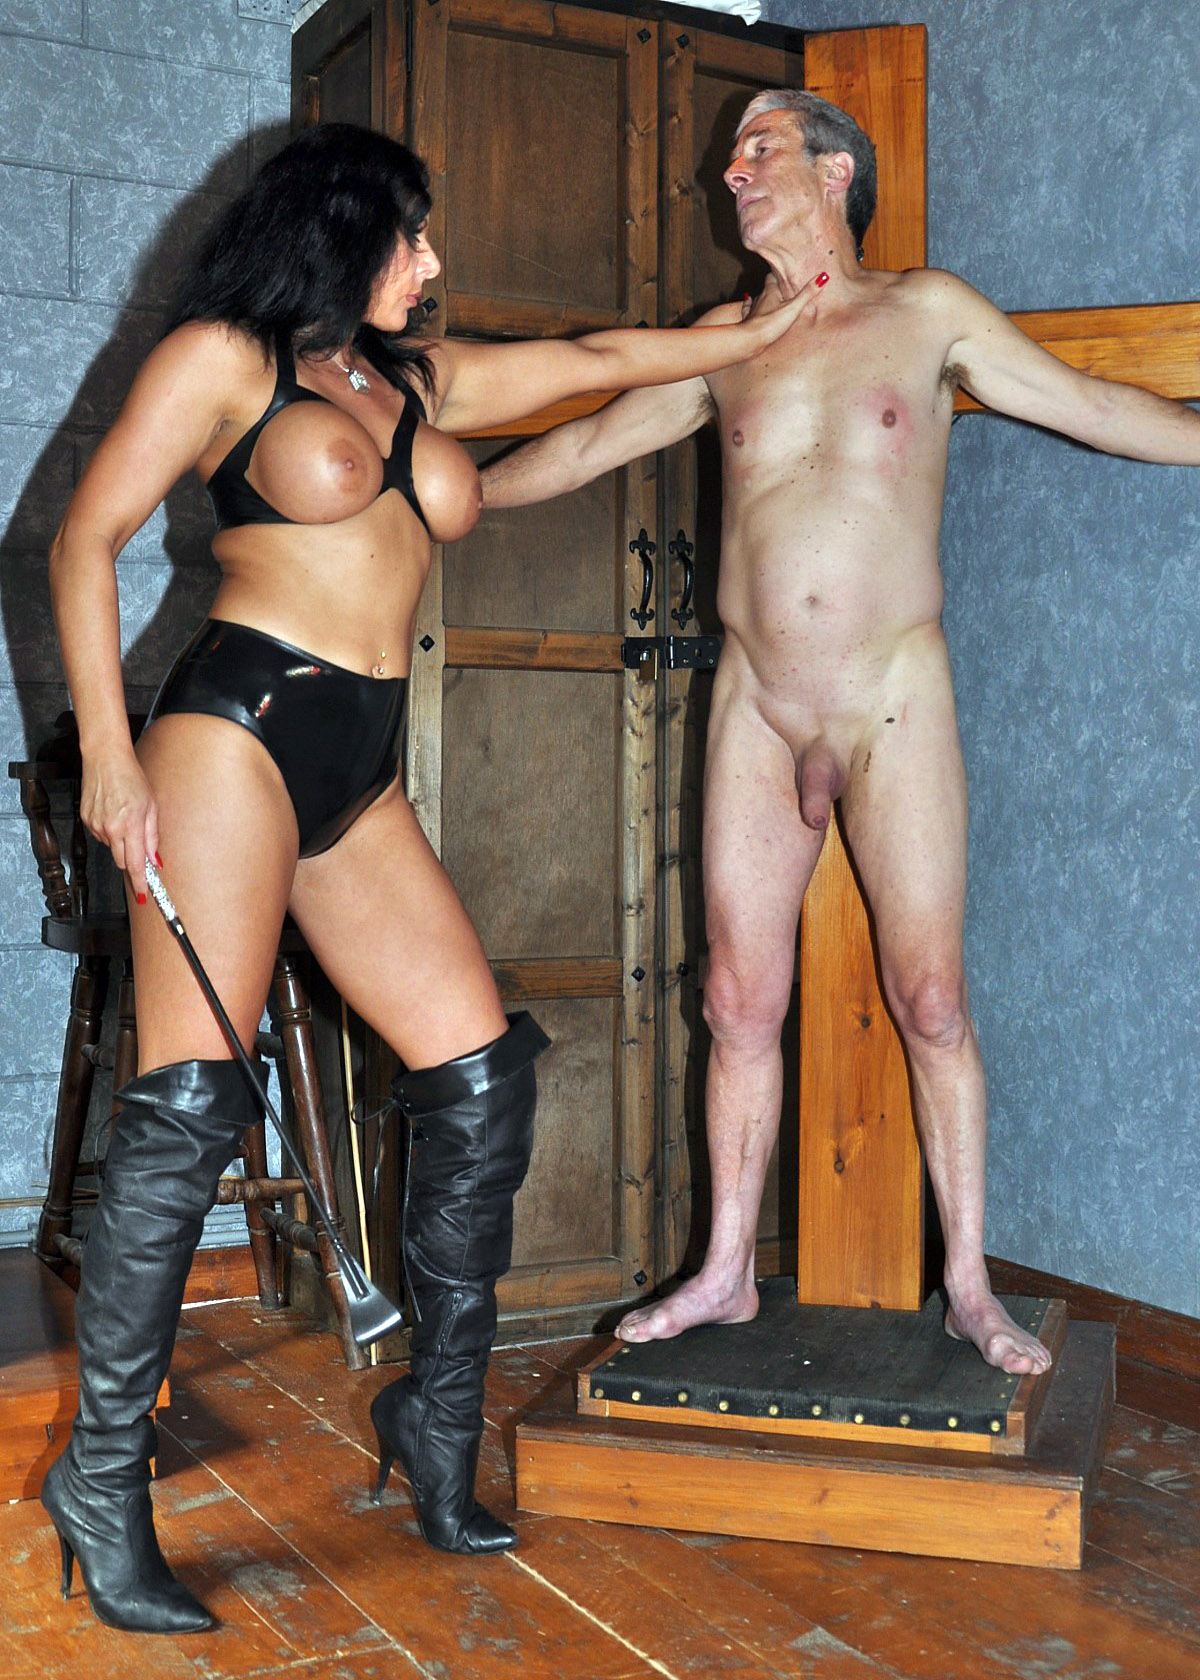 Bdsm furniture pillory